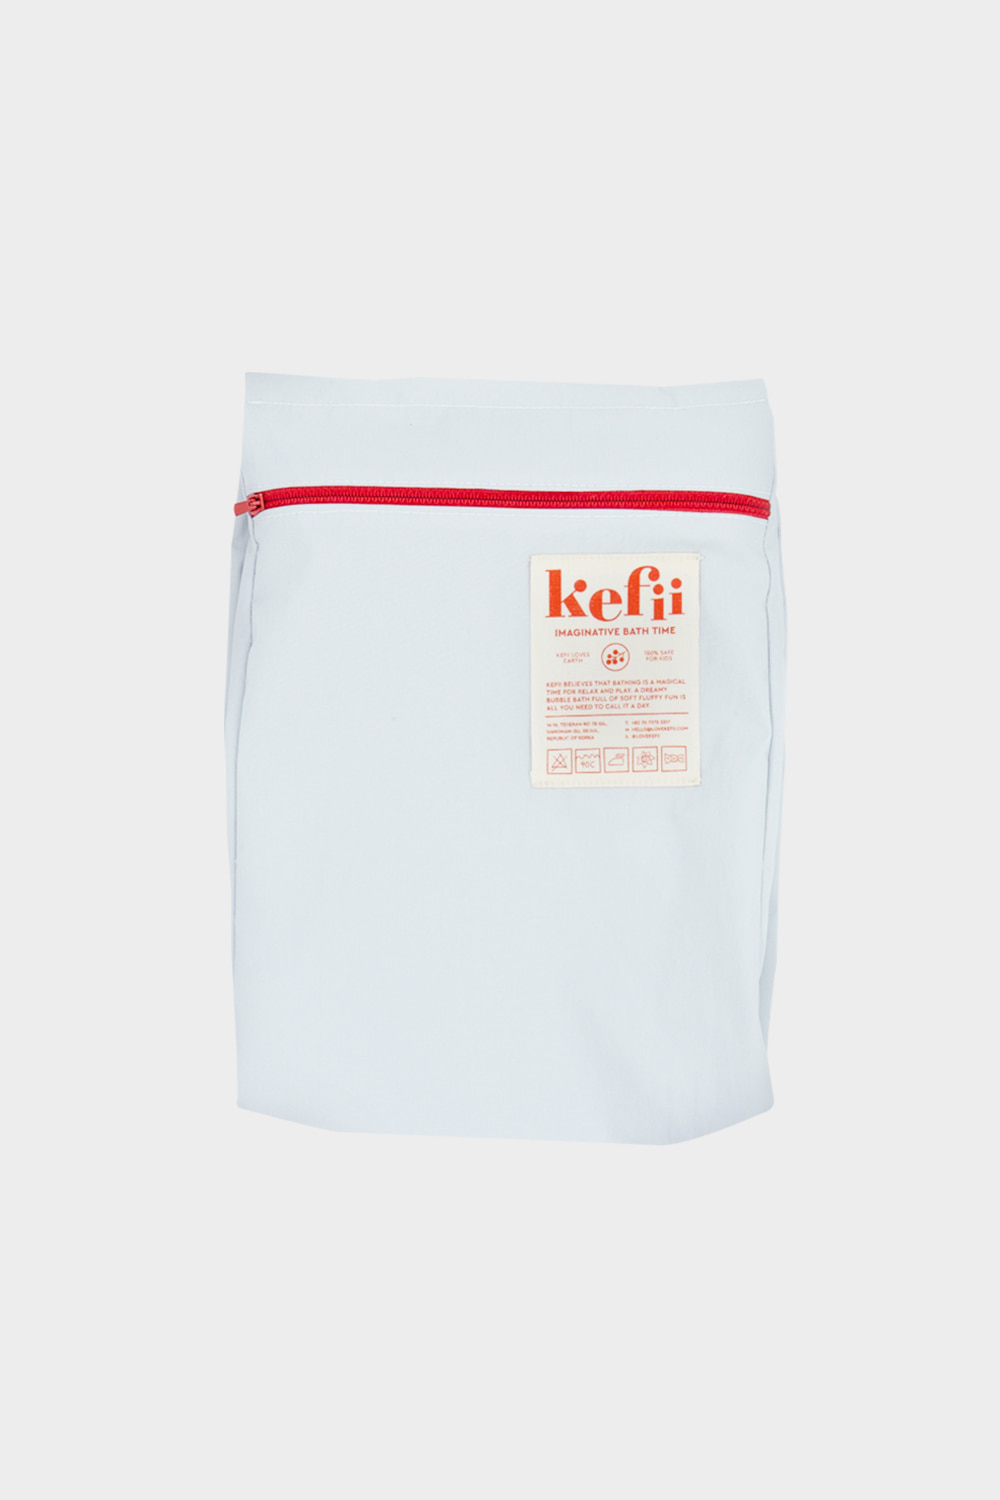 Bath Travel Bag - Red Tip